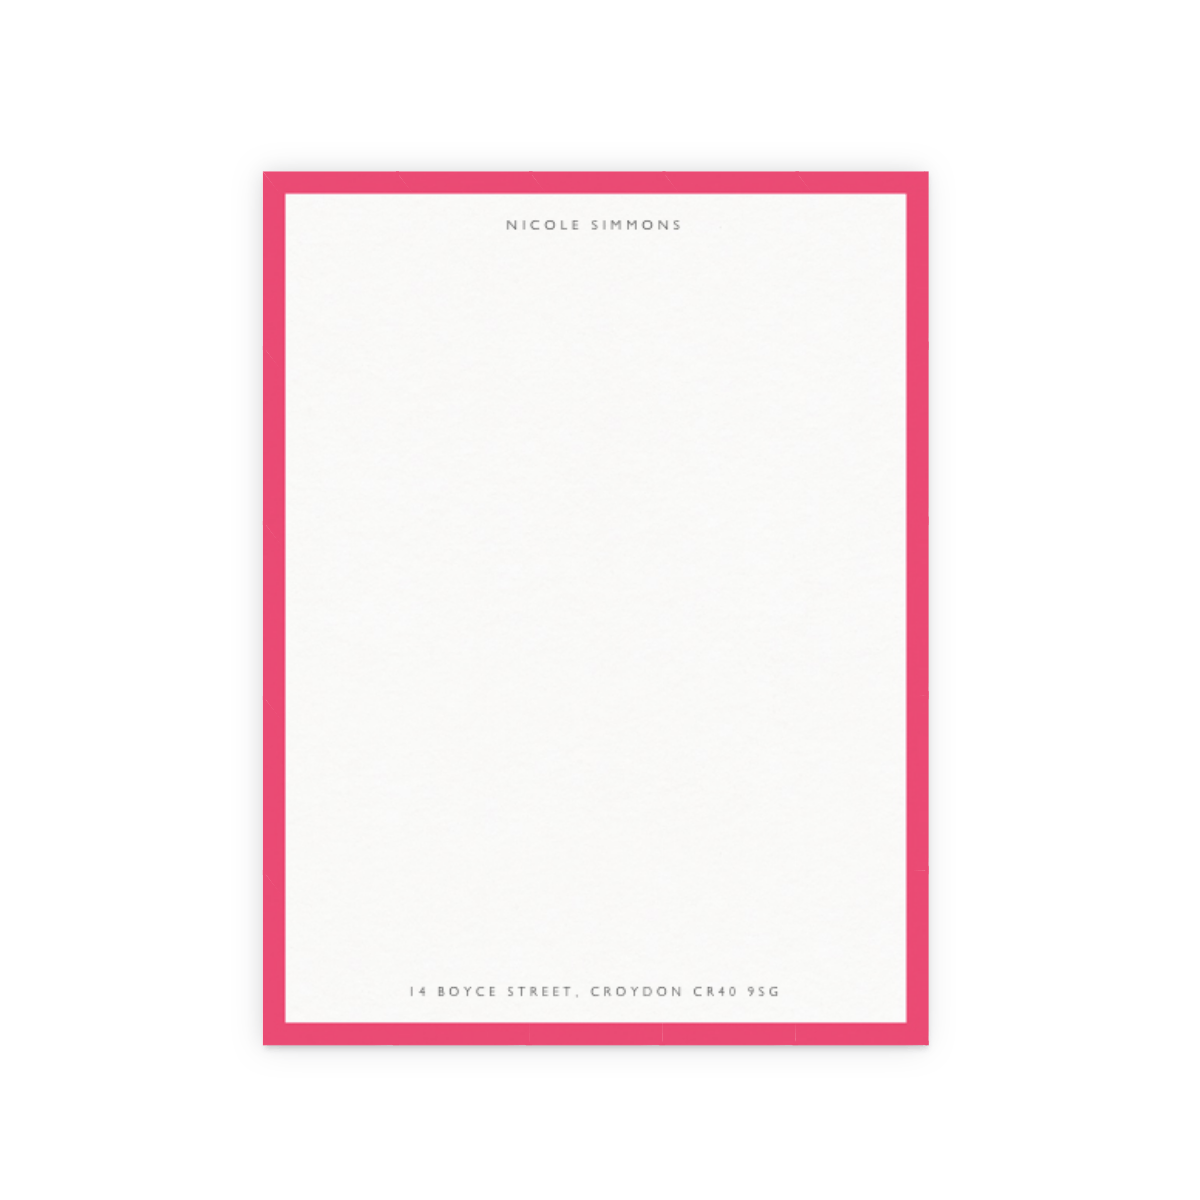 Https%3a%2f%2fwww.papier.com%2fproduct image%2f71372%2f45%2fhot pink border 16860 front 1554990715.png?ixlib=rb 1.1